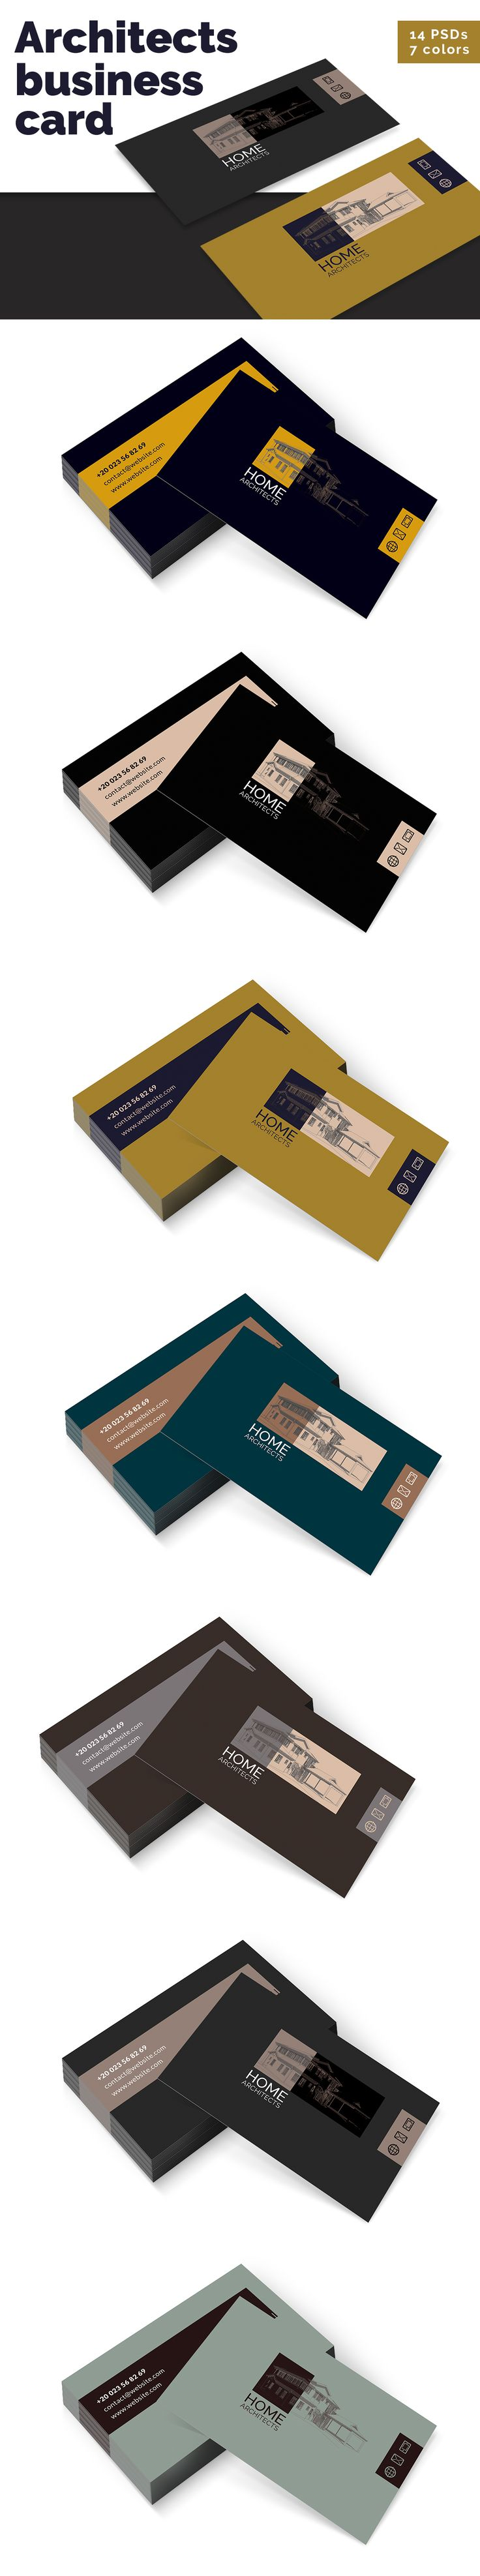 Architects Business Cards Templates